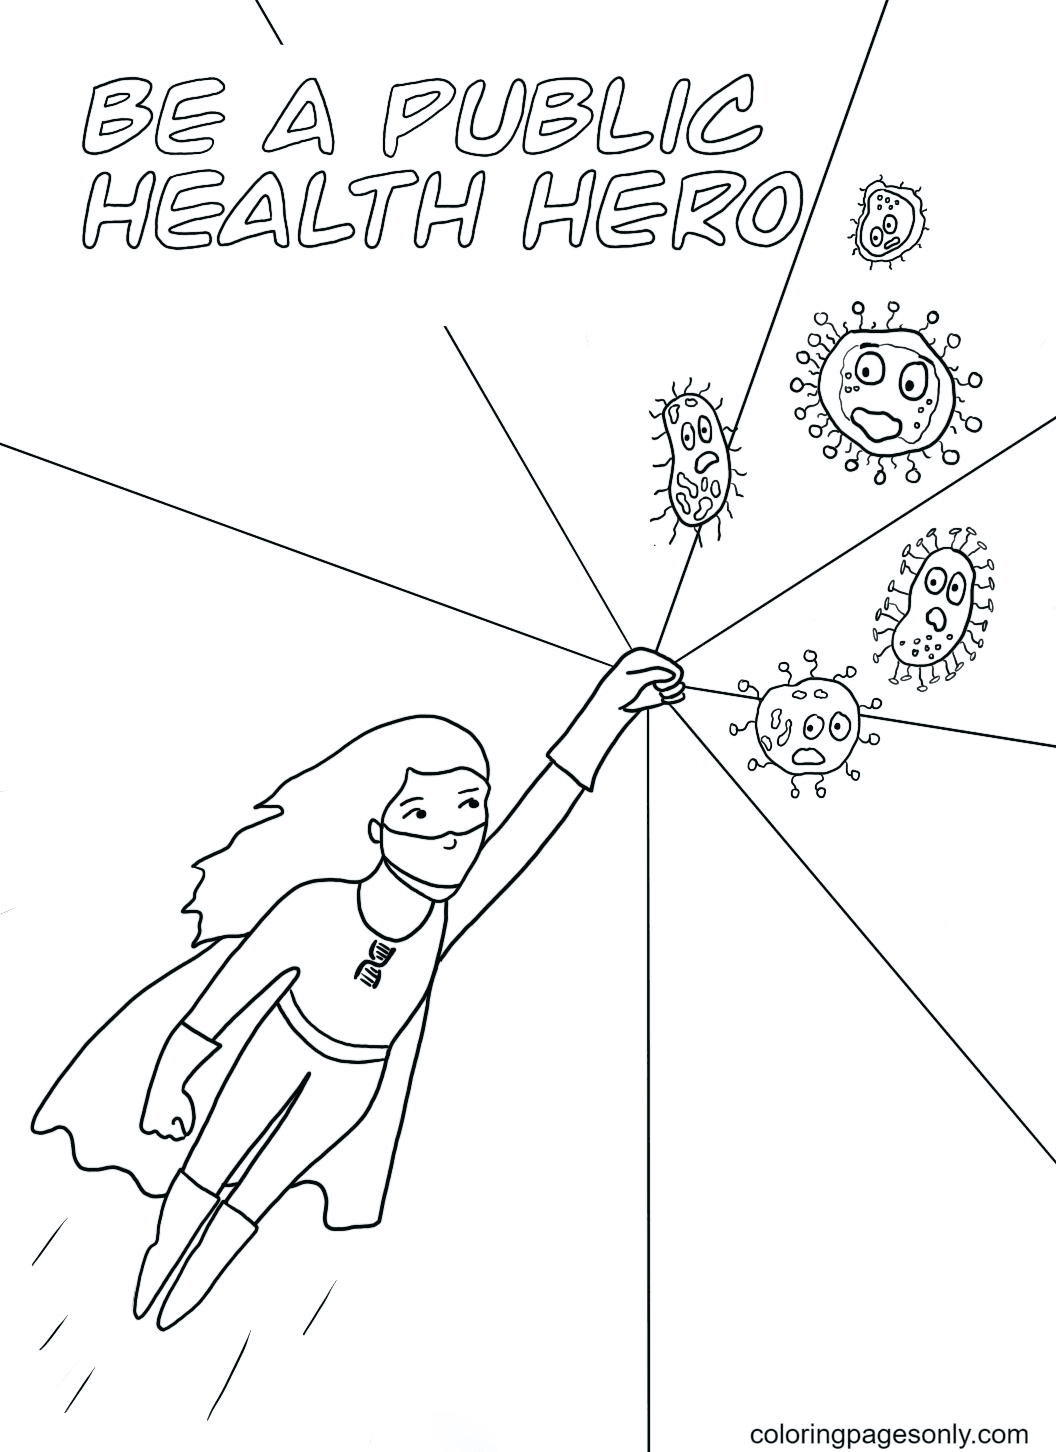 Health hero against Covid-19 Coloring Page